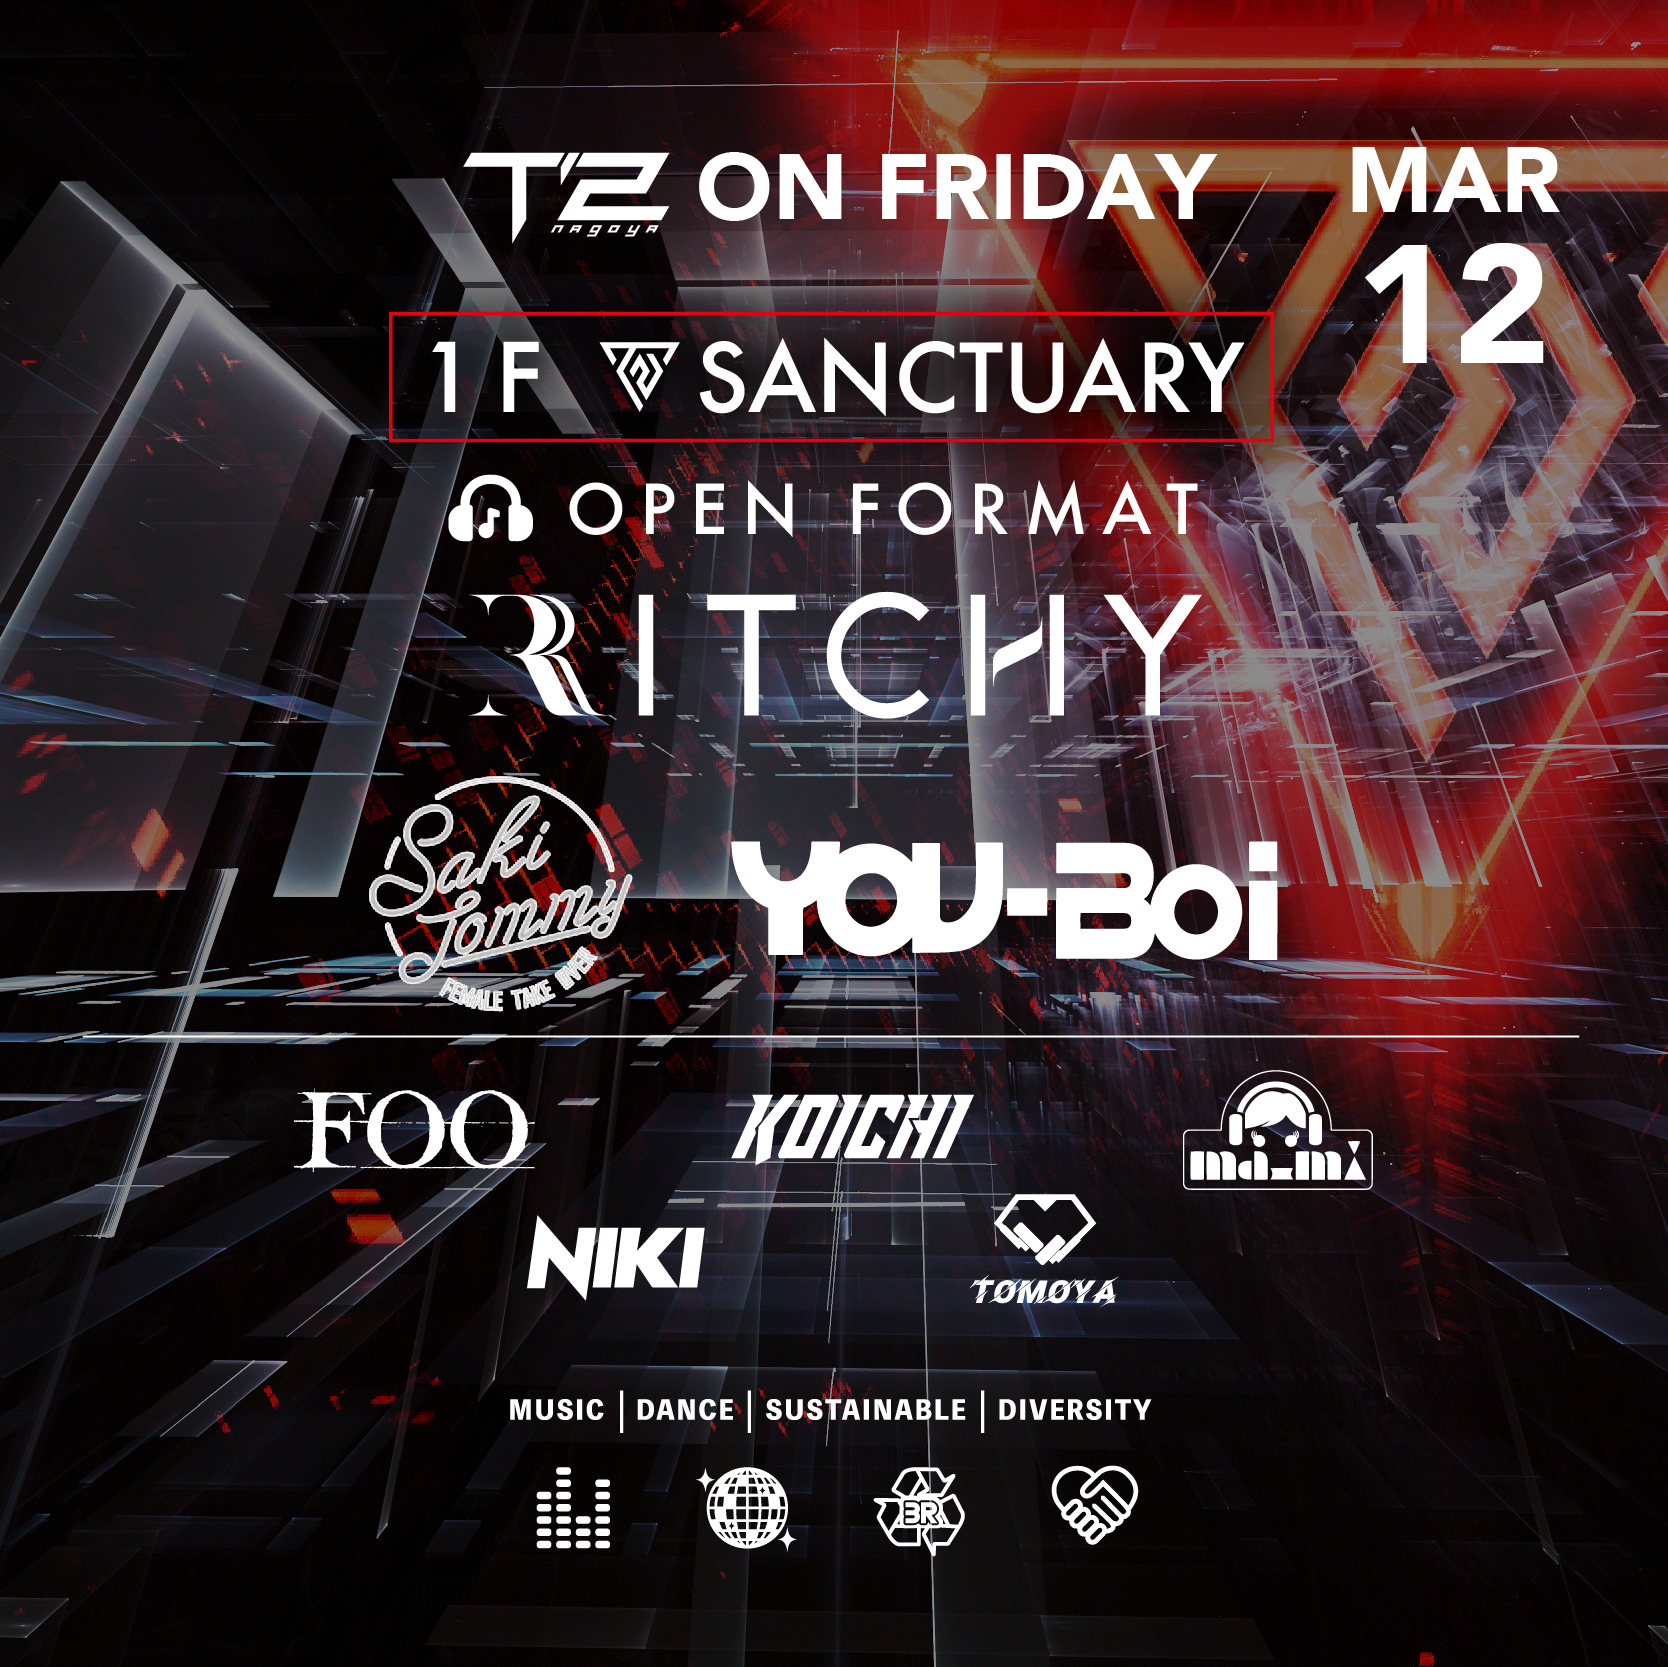 T2 ON FRIDAY